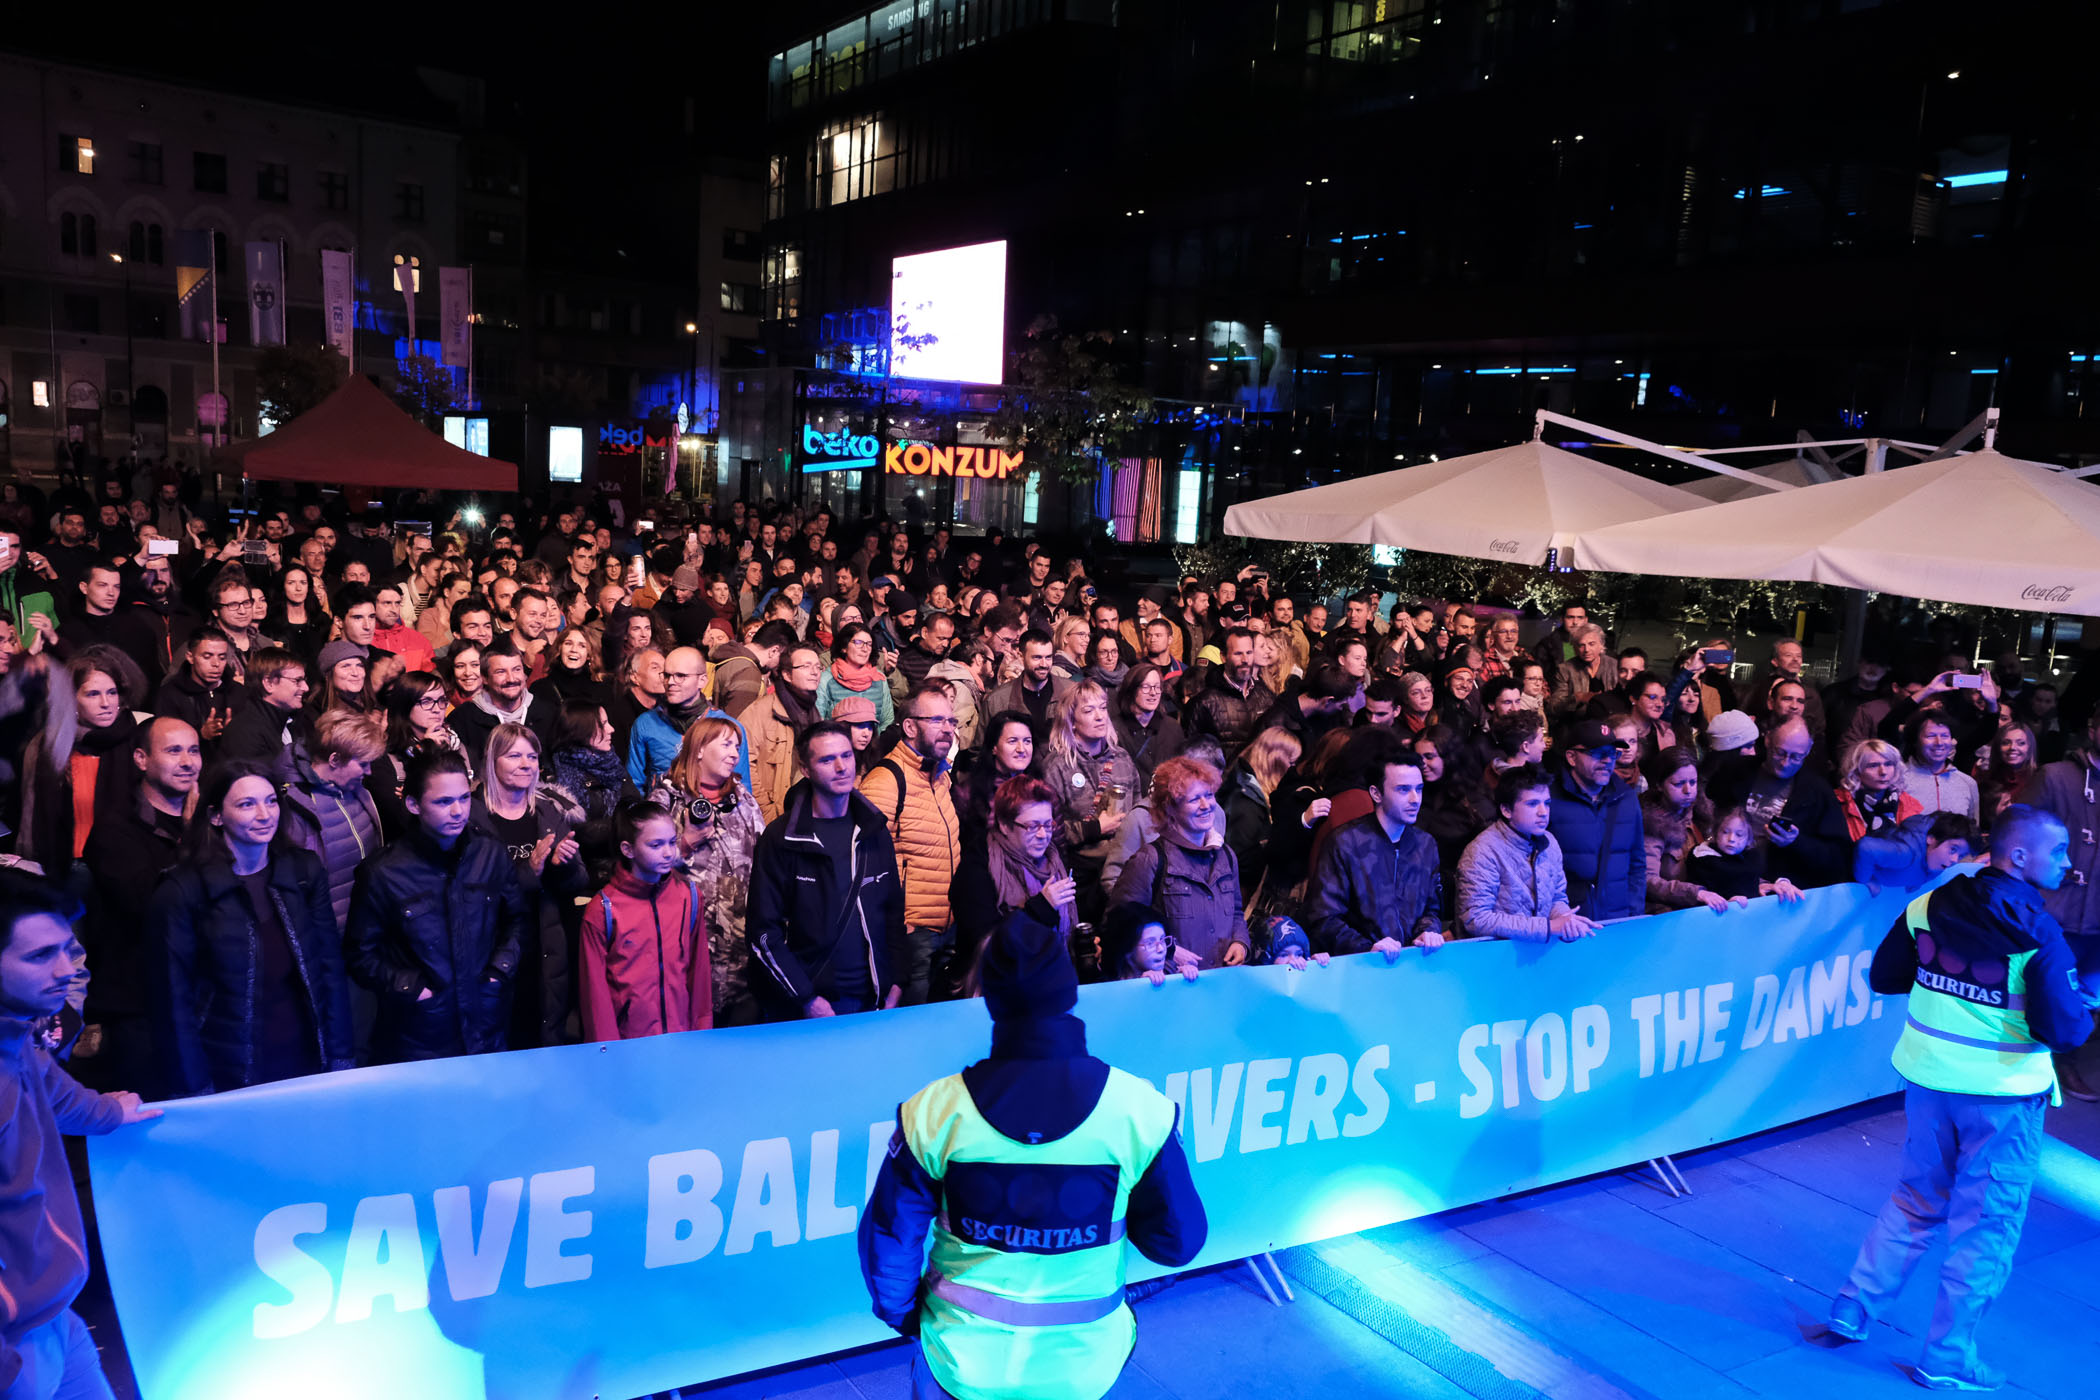 Hundreds of people attended the Concert for Balkan Rivers in Sarajevo on September 29th. © Nick St. Oegger